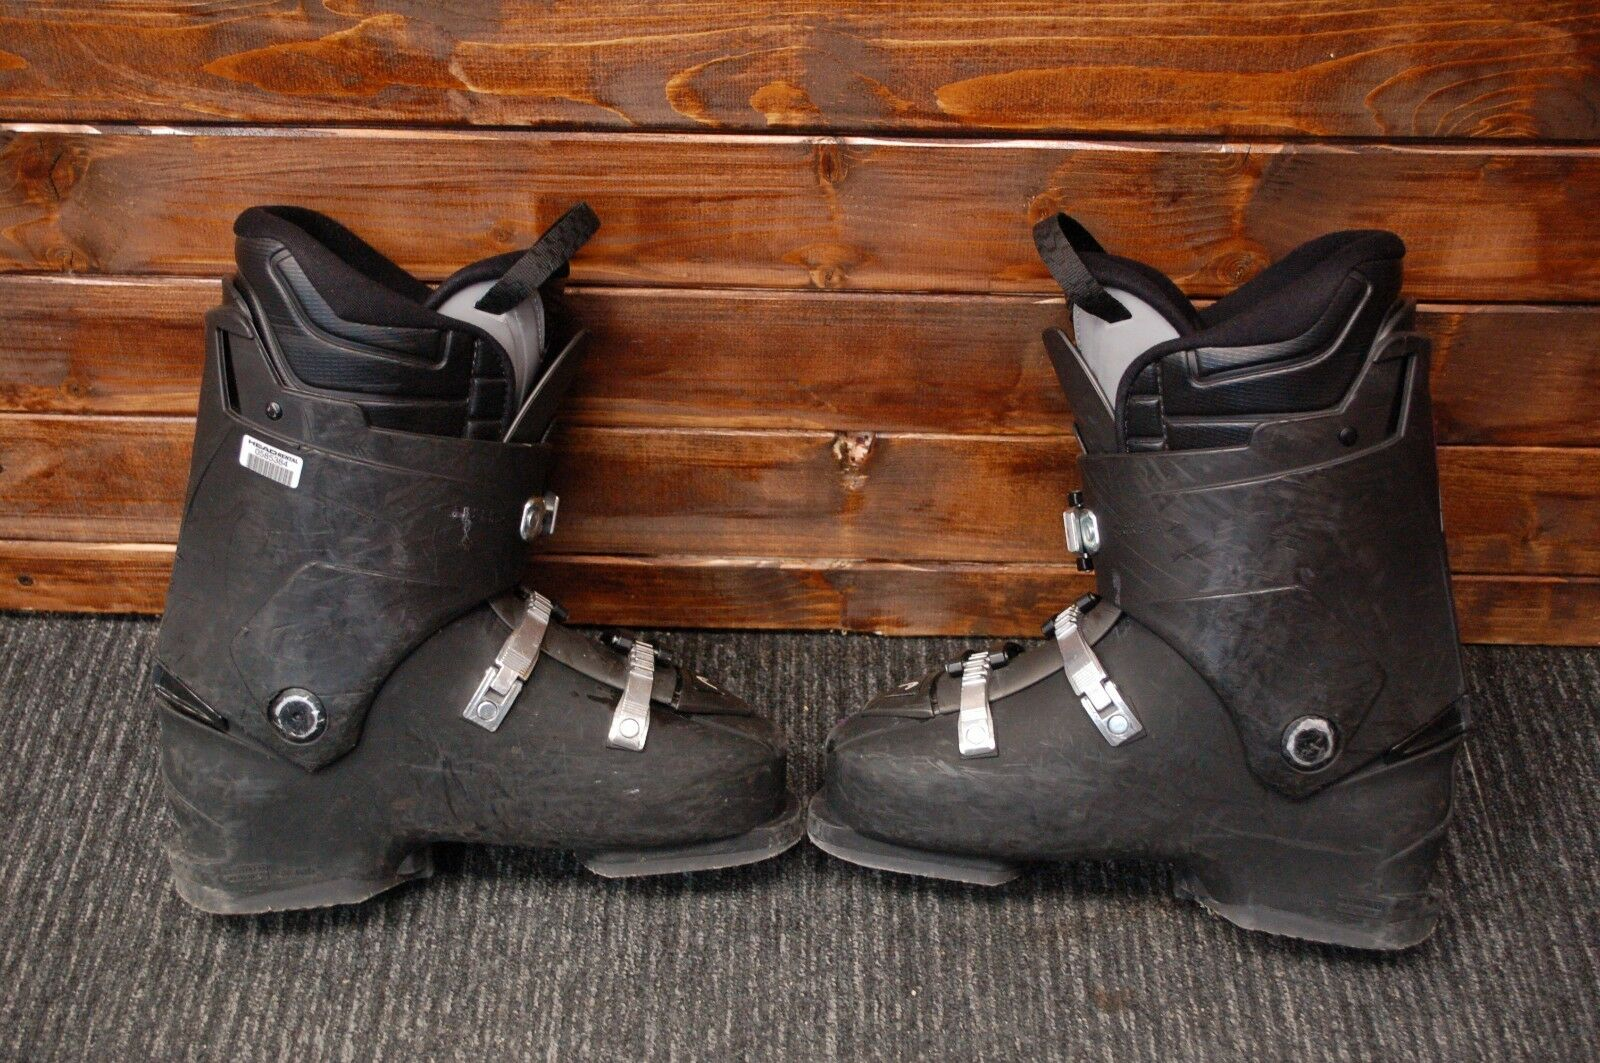 HEAD FX 65 HT Ski Stiefel (US 9; EU EU EU 42.5; UK 8.5) 66ee81